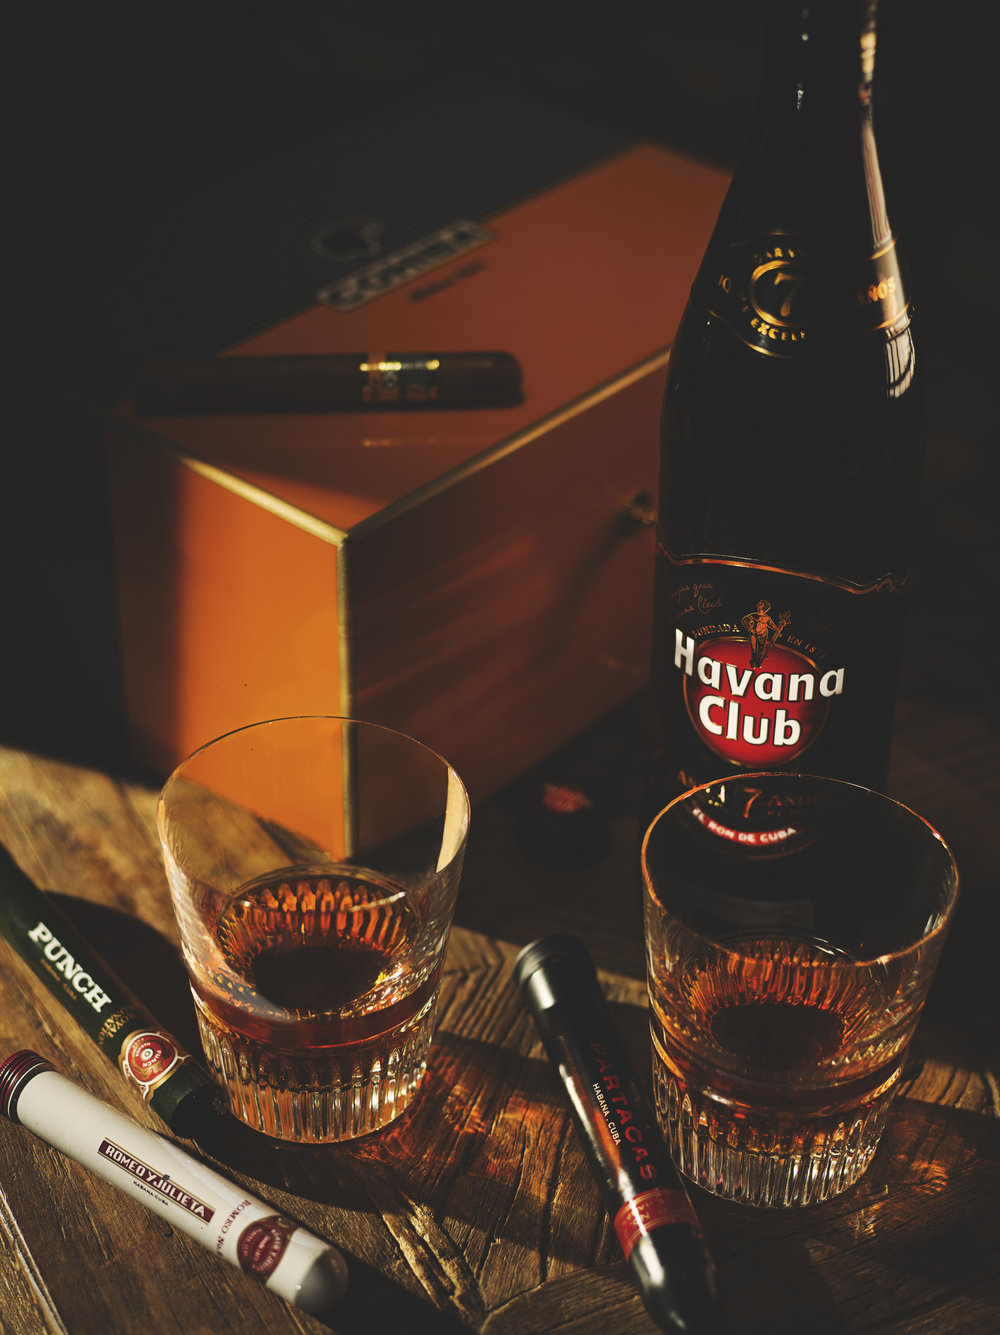 Havana Club alcoholic drinks photographer